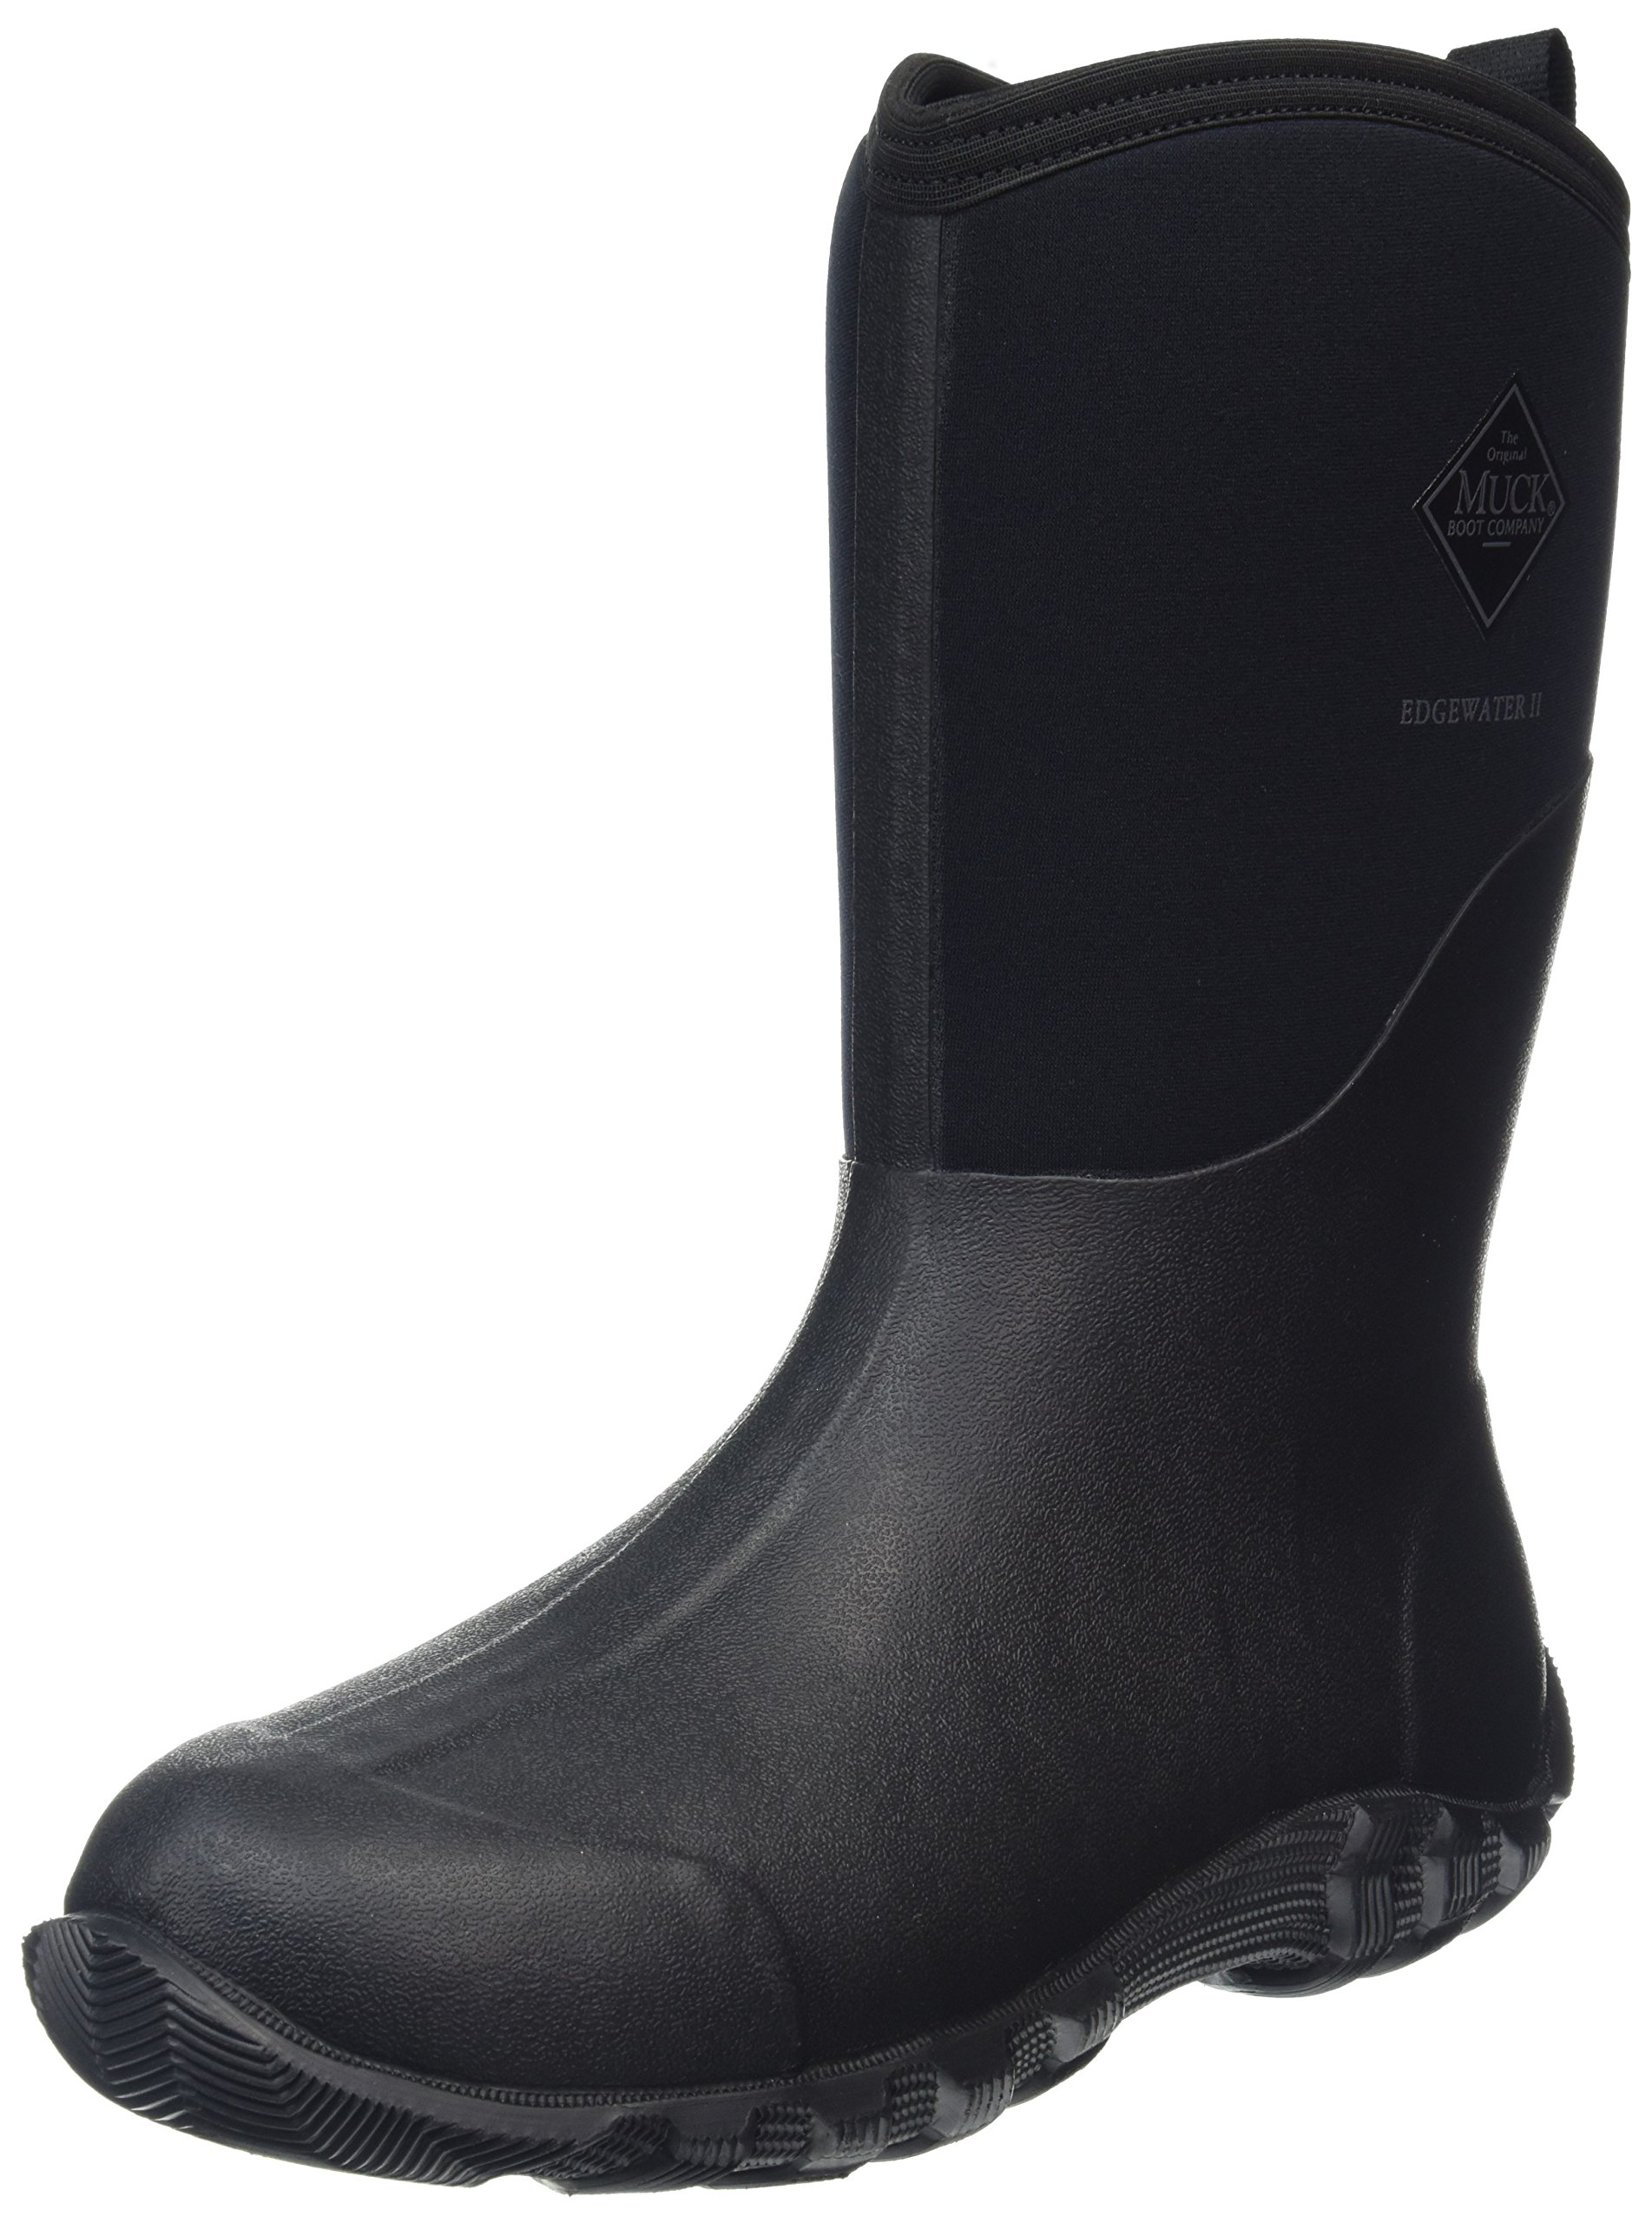 Muck Edgewater ll Multi-Purpose Mid-Height Men's Rubber Boots